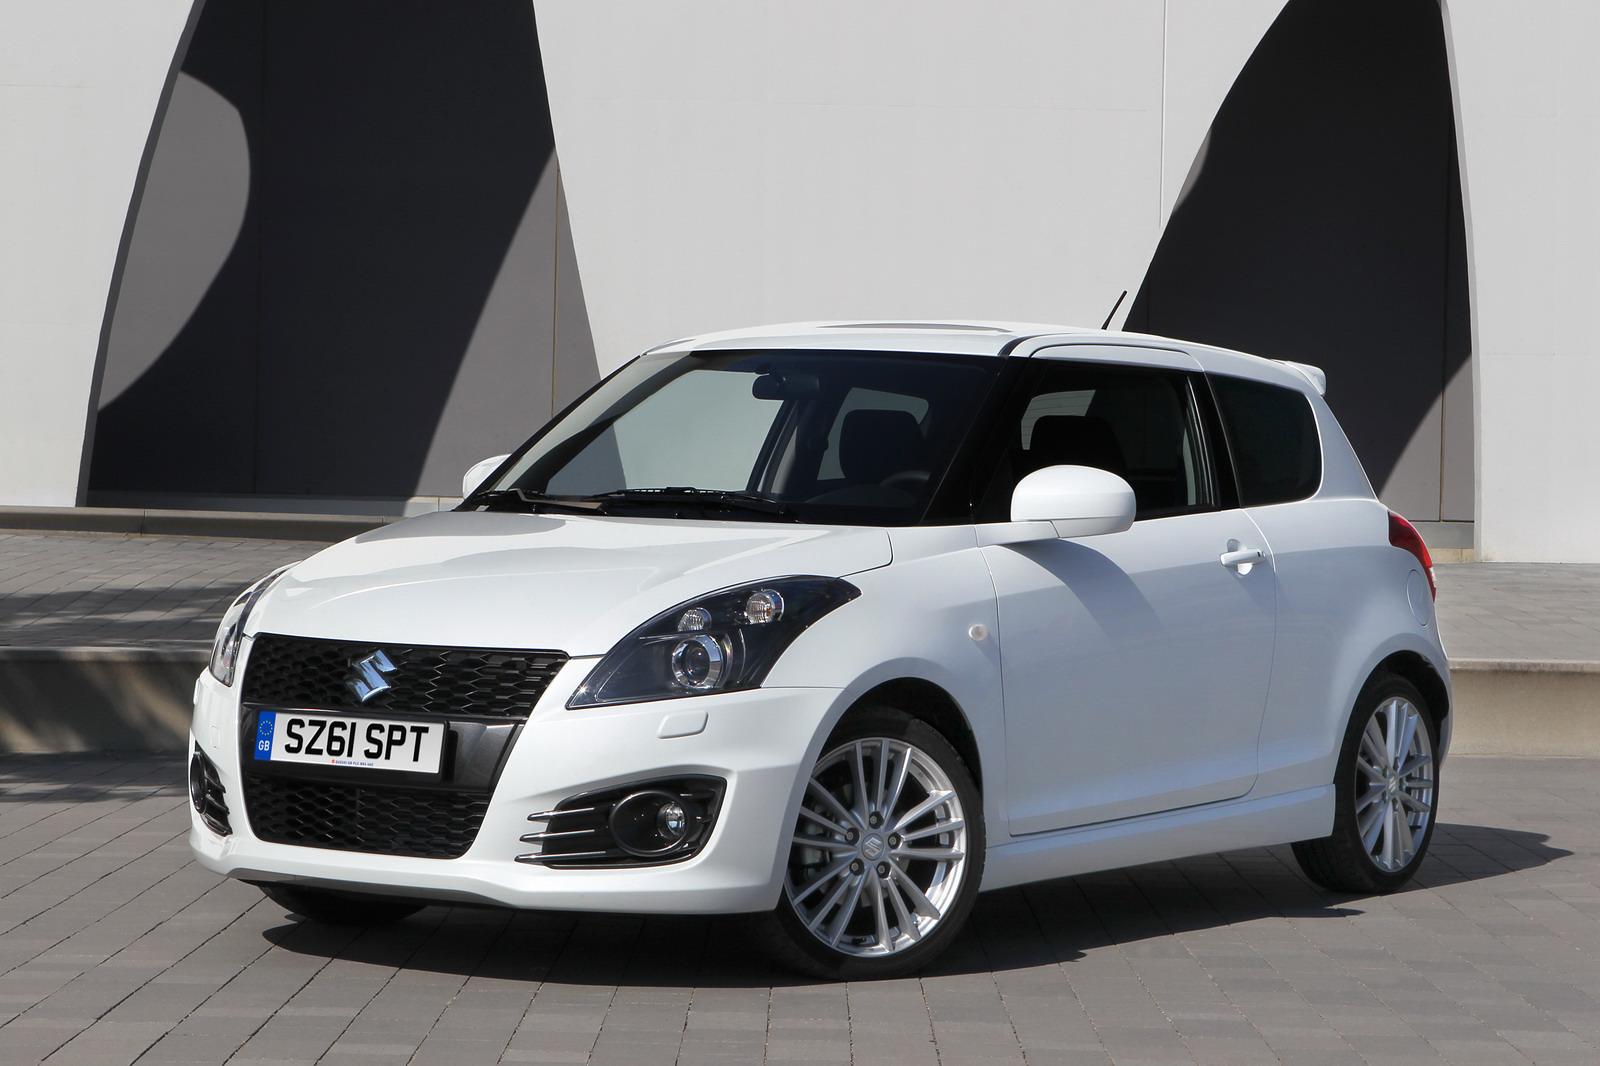 2012 suzuki swift sport price at 13 500 in the uk. Black Bedroom Furniture Sets. Home Design Ideas